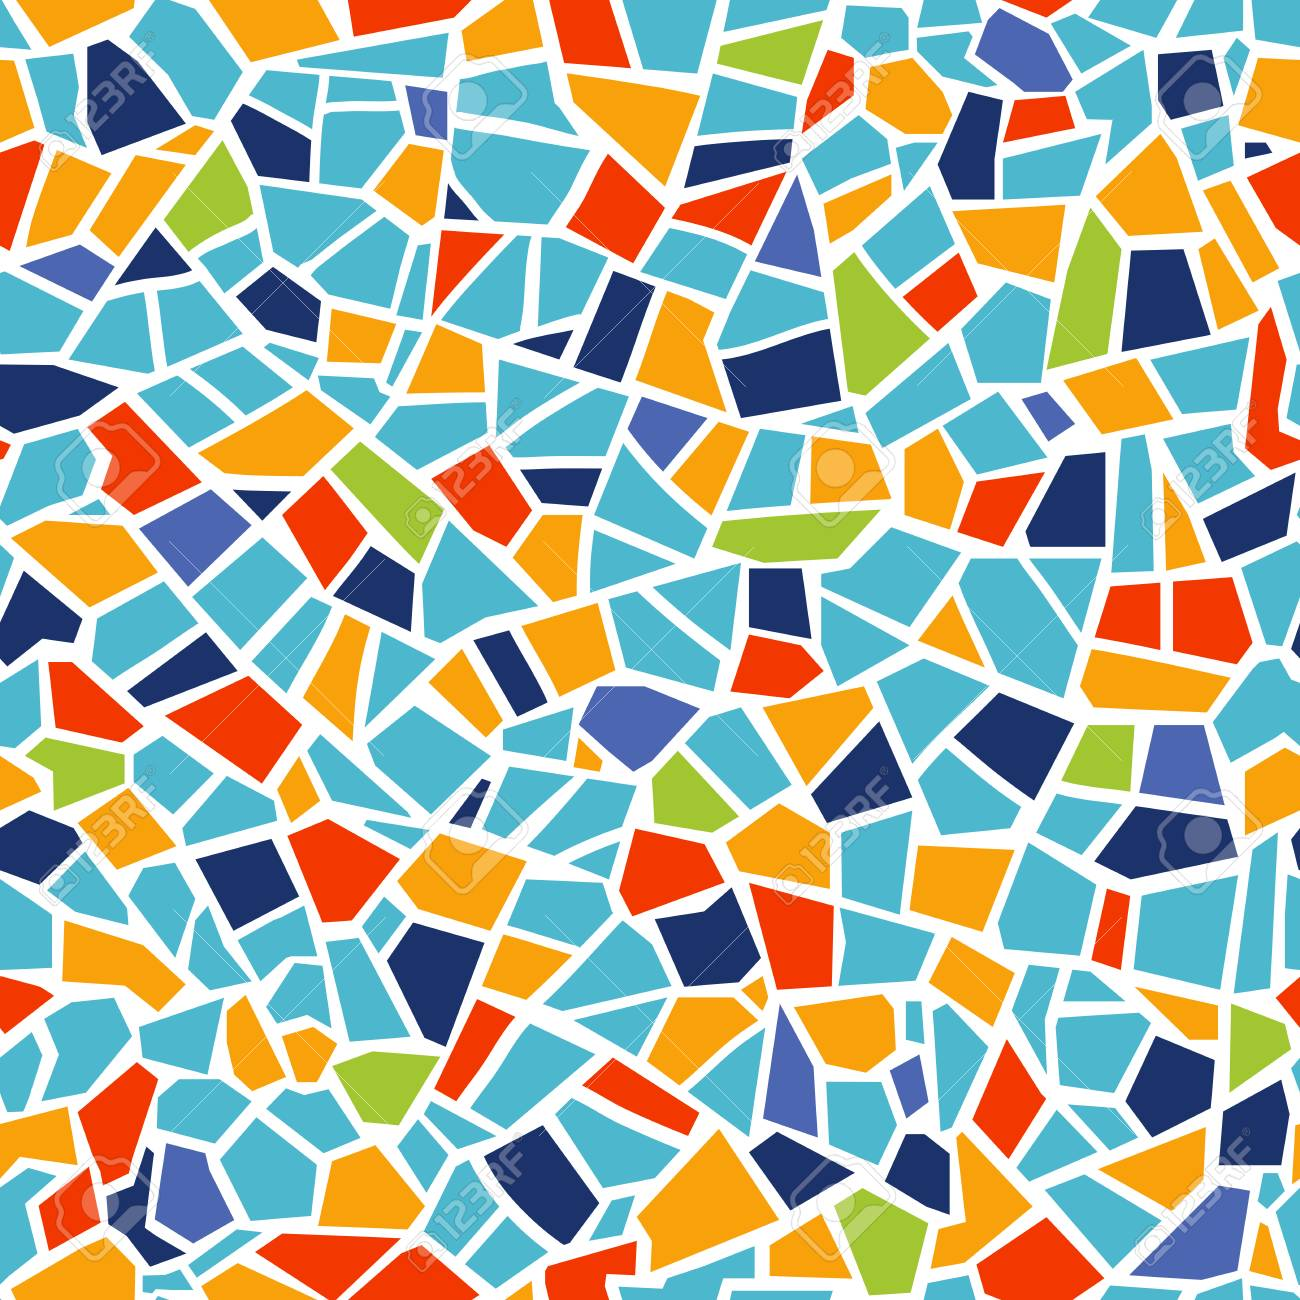 Bright abstract mosaic seamless pattern. Vector background. For design and decorate backdrop. Endless texture. Ceramic tile fragments. Colorful broken tiles trencadis. Yellow blue red colors art - 109808517